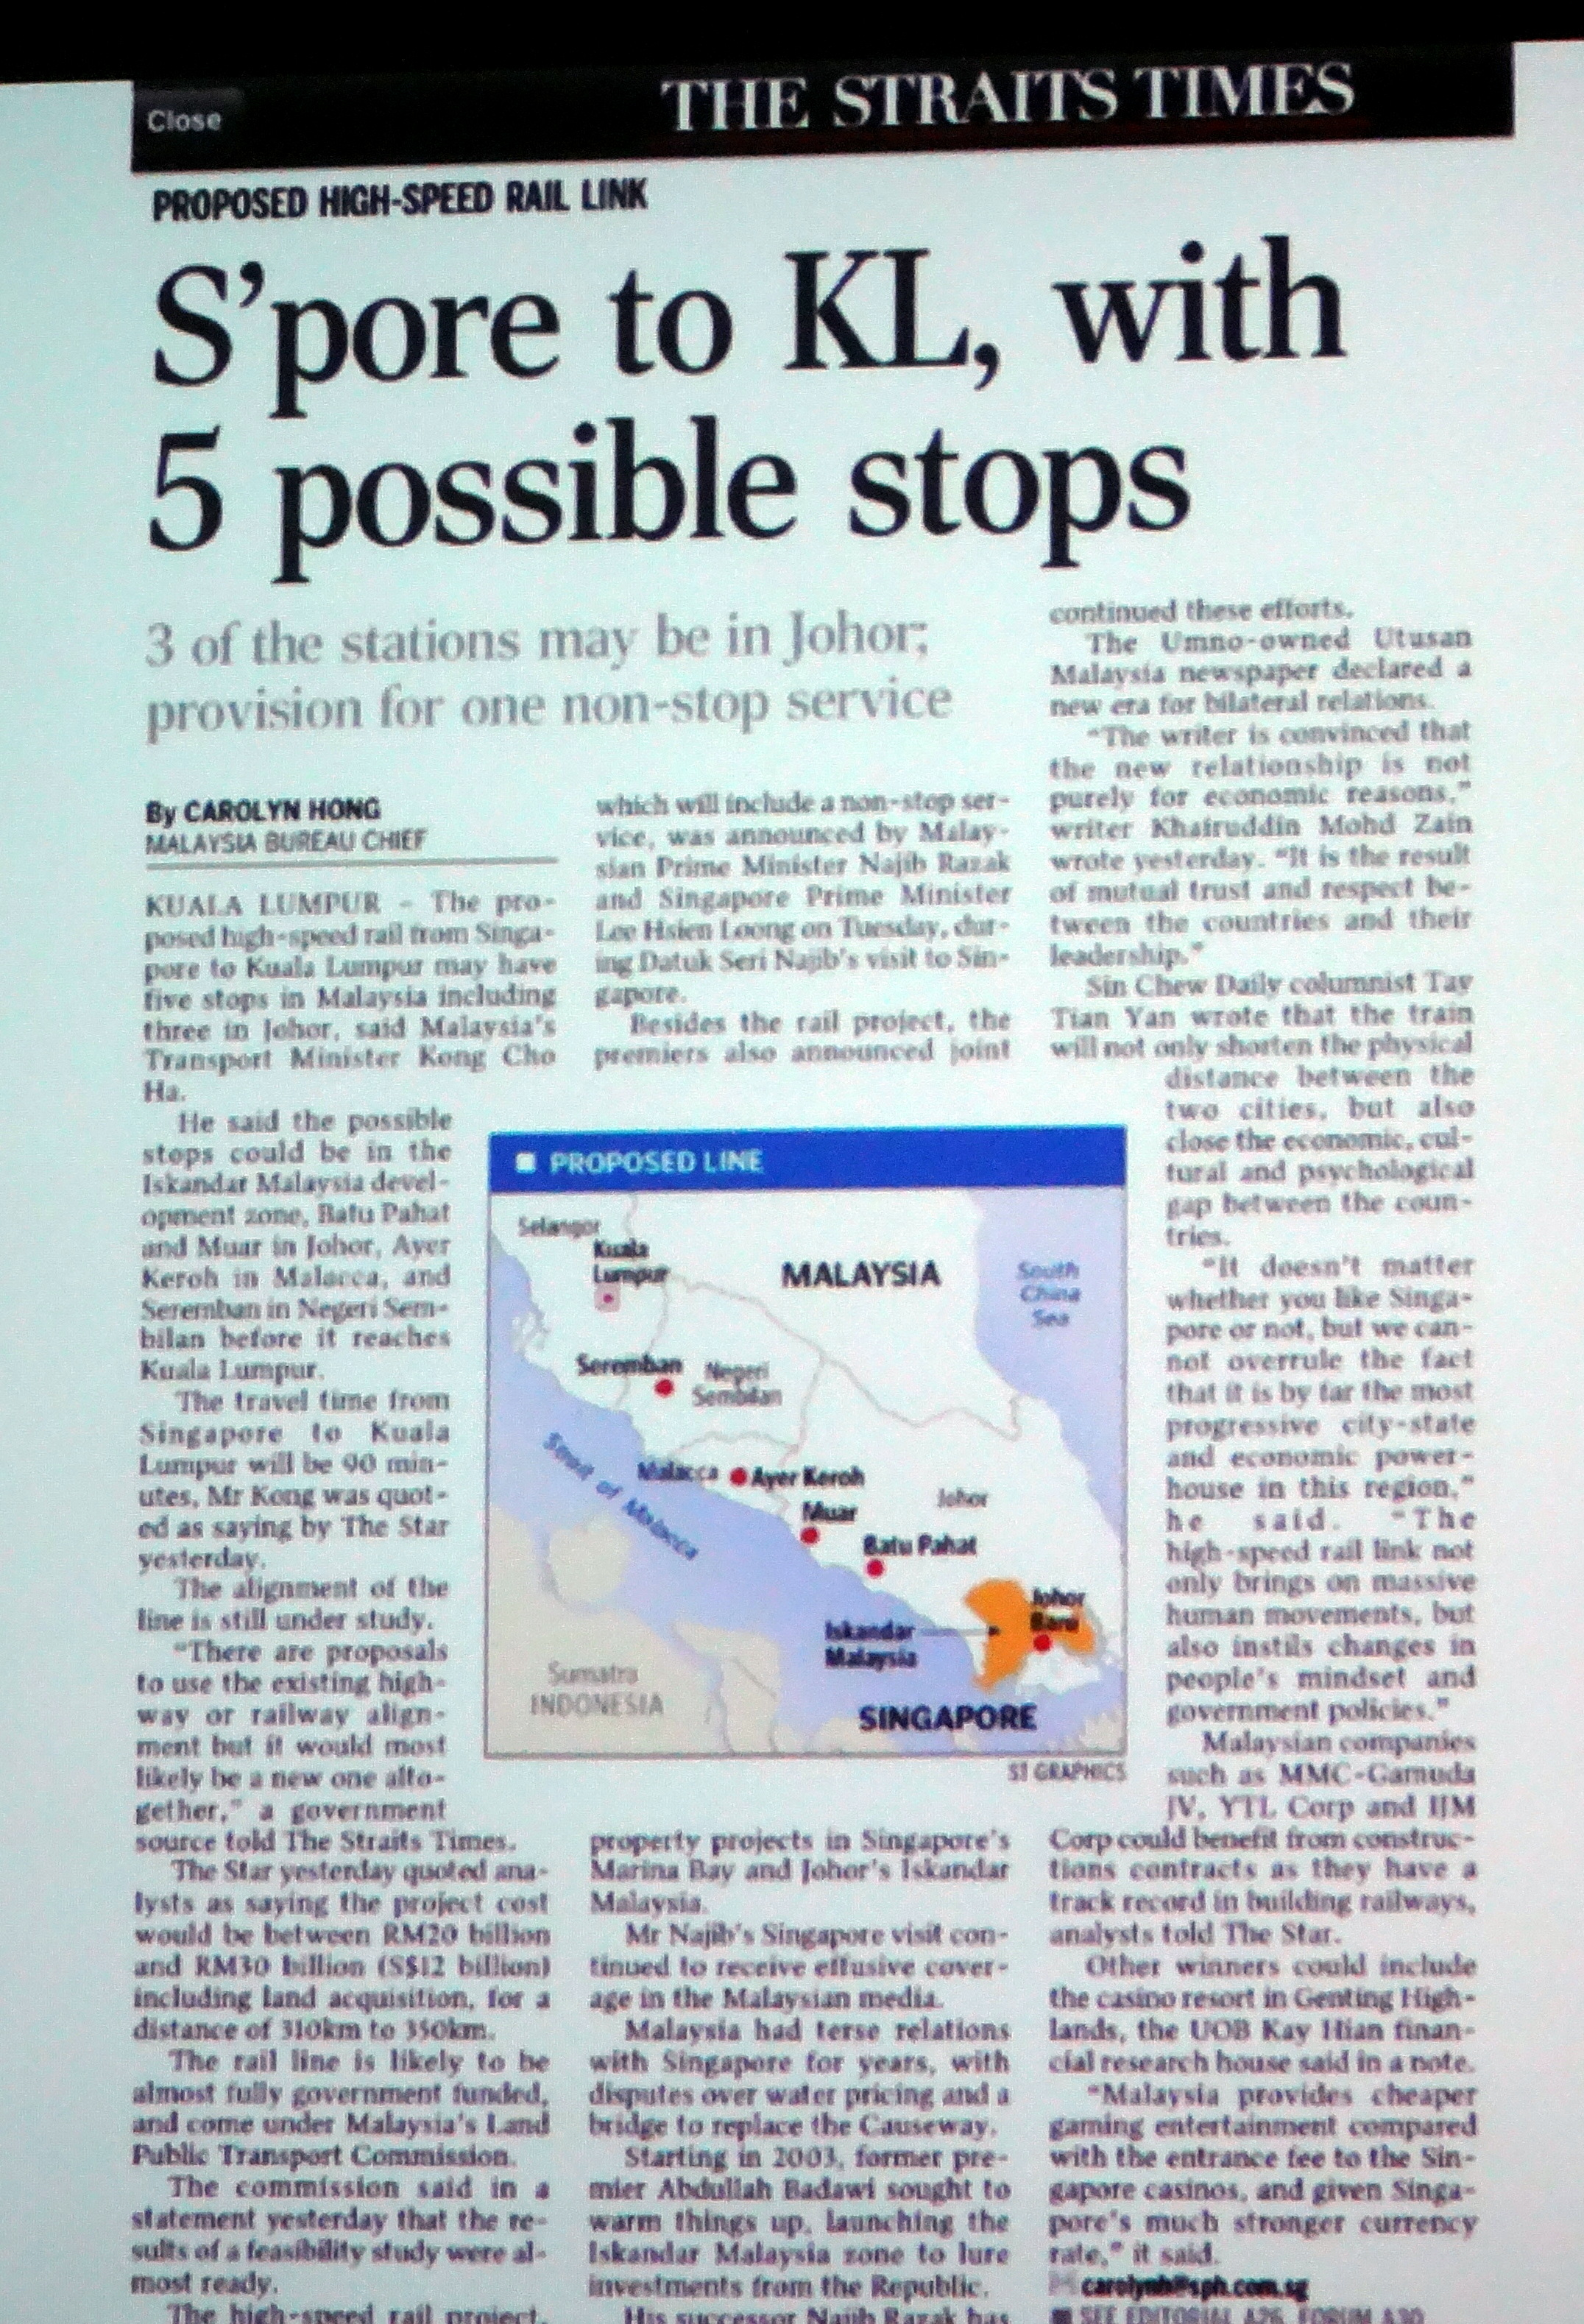 Spore to KL with 5 possiblestops